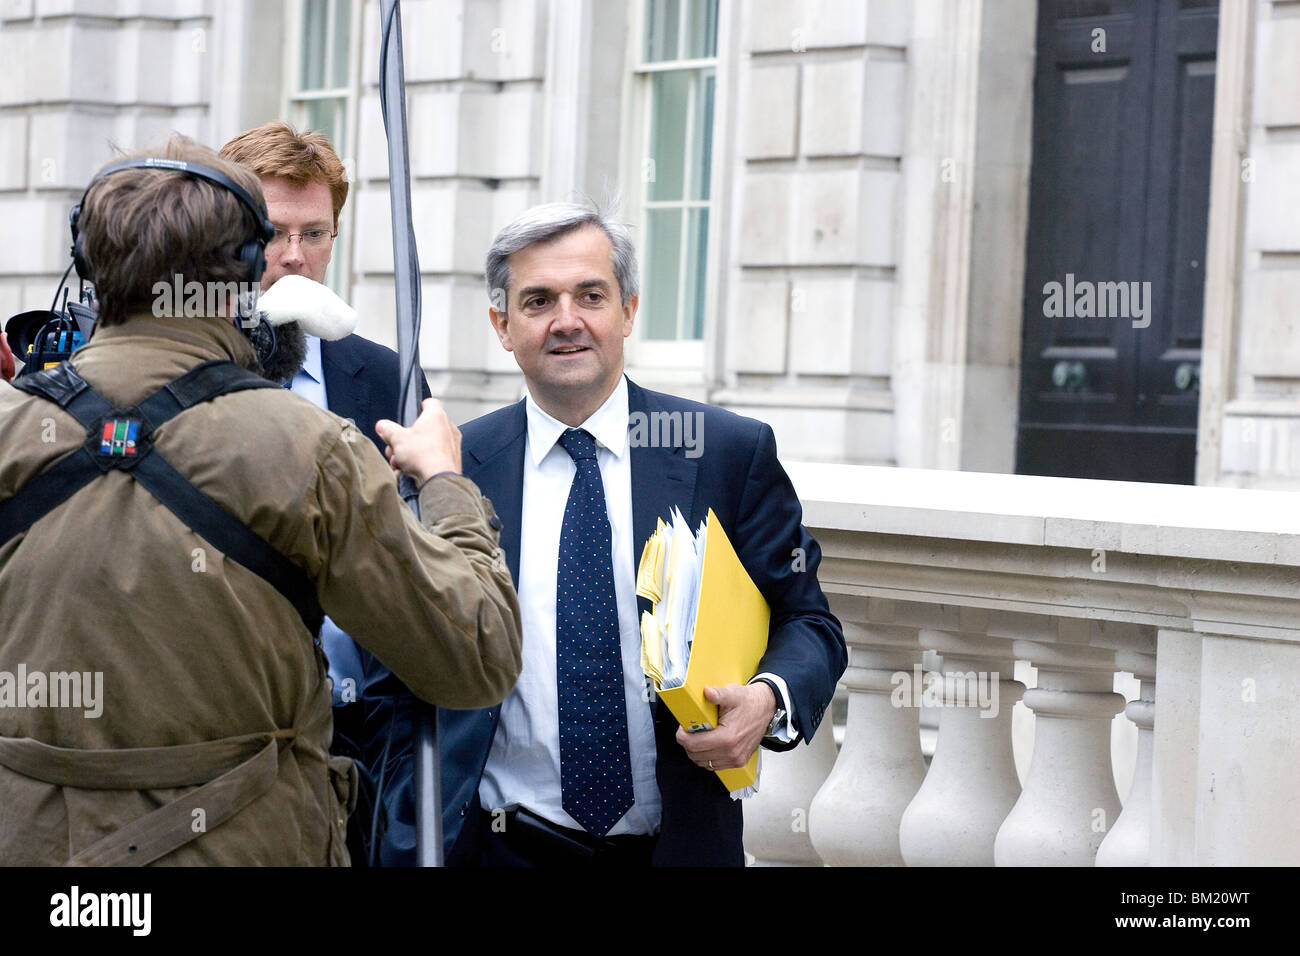 Chris Huhne on his way to the coalition talks with the Conservatives after the 2010 election. - Stock Image